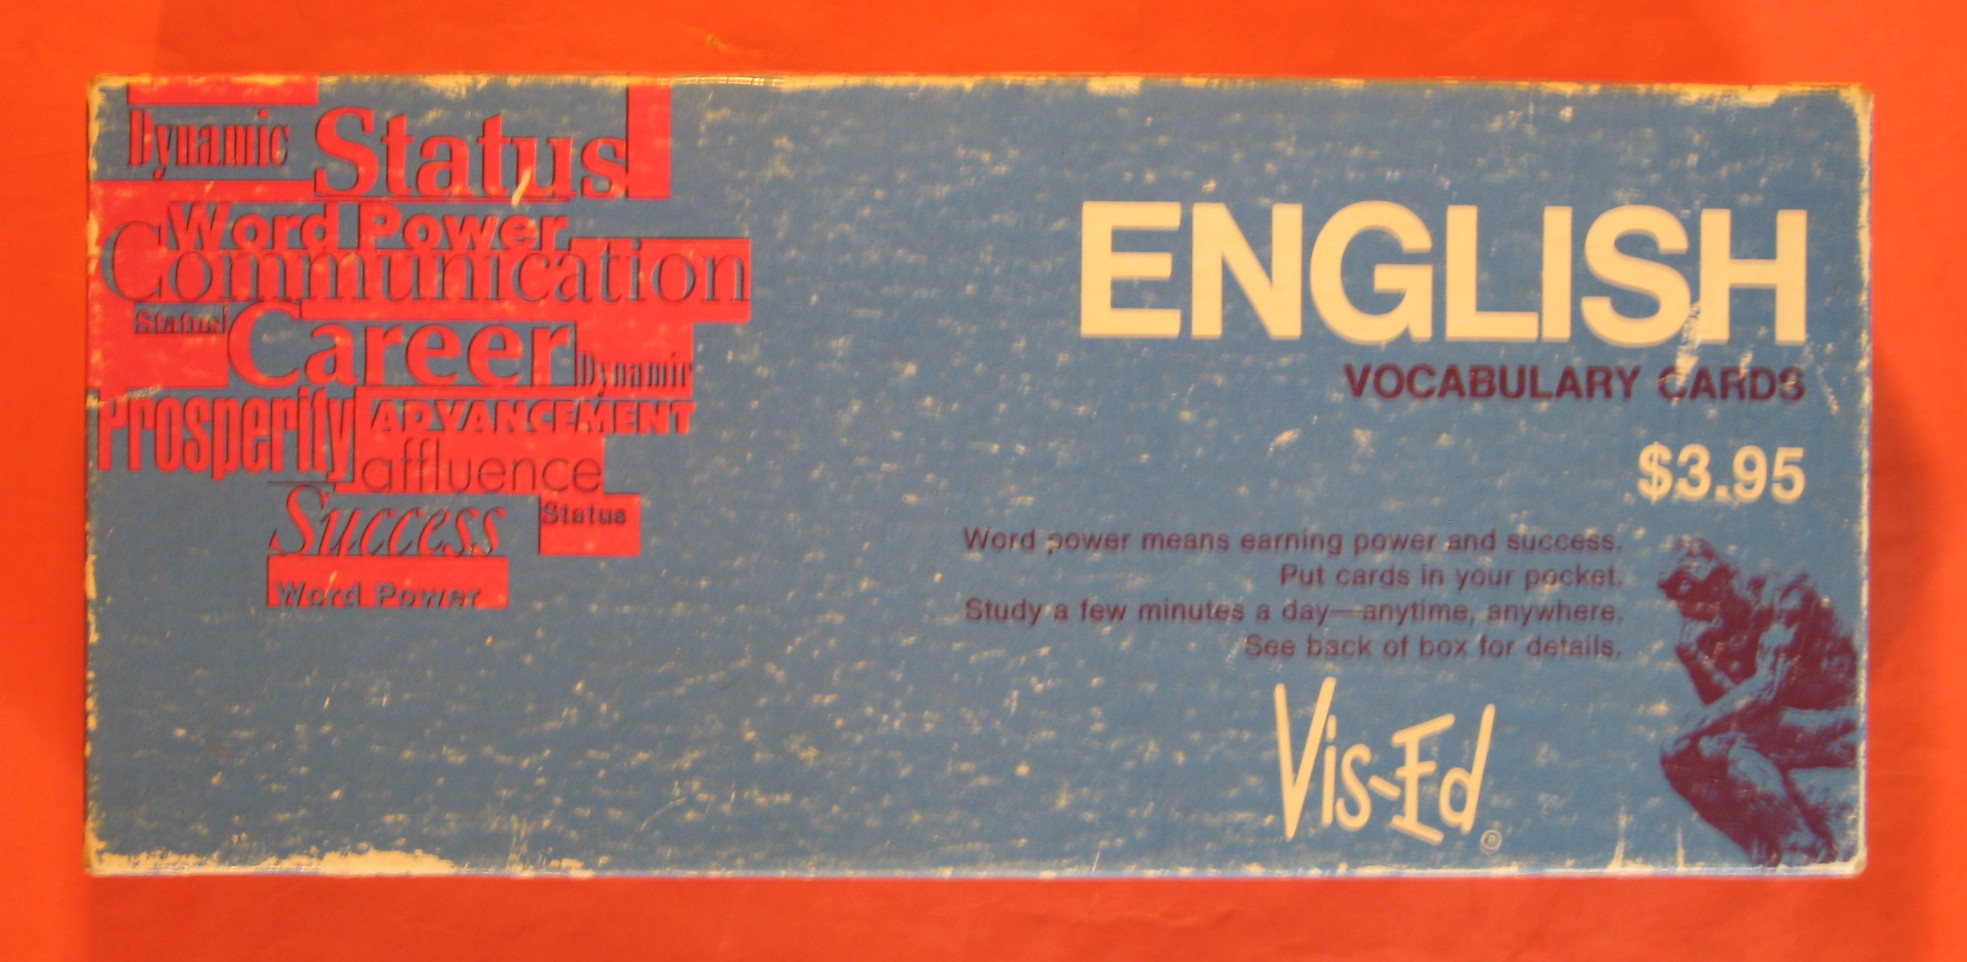 English Vocabulary Cards, Visual Education